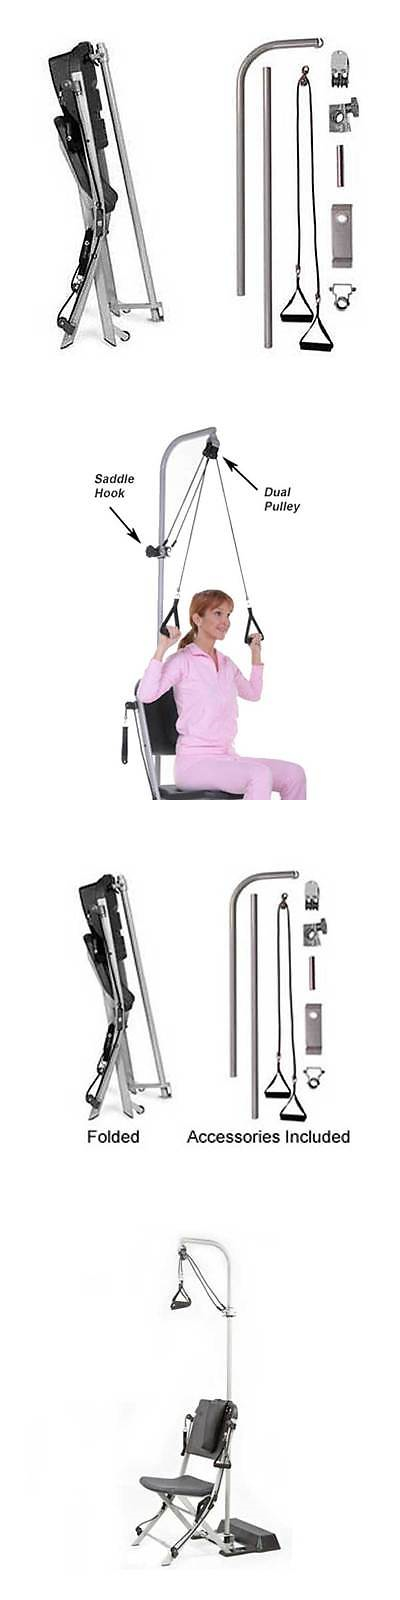 resistance chair accessories dinning room covers equipment parts and 179001 freedom flex shoulder stretcher buy it